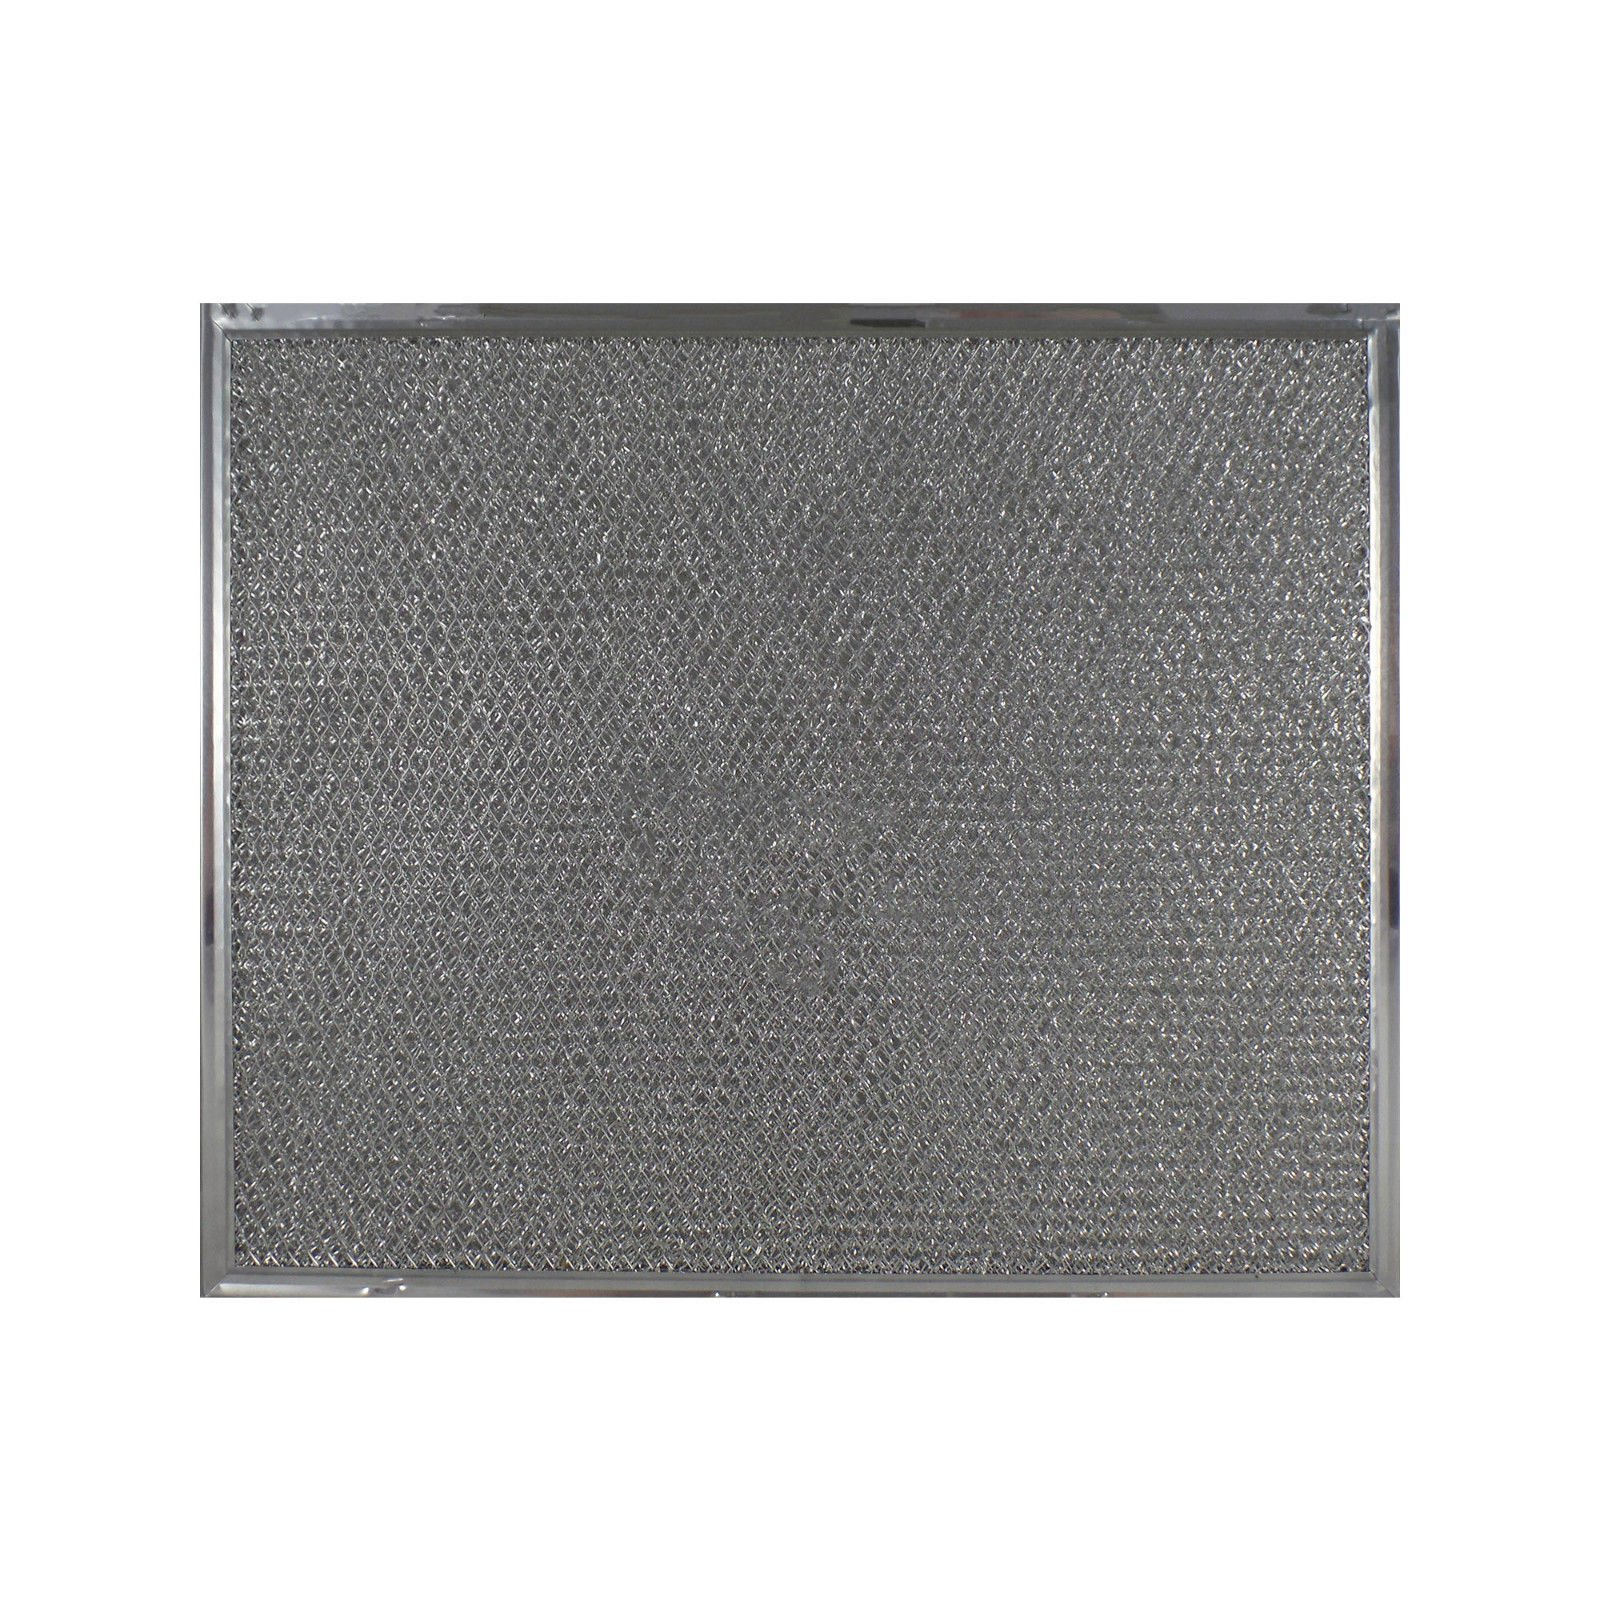 (KaleidoScope) Grease Filter For Maytag Jenn-Air 707929 708929 G-8518 11-3/8'' x 14'' x 1/8'' NEW